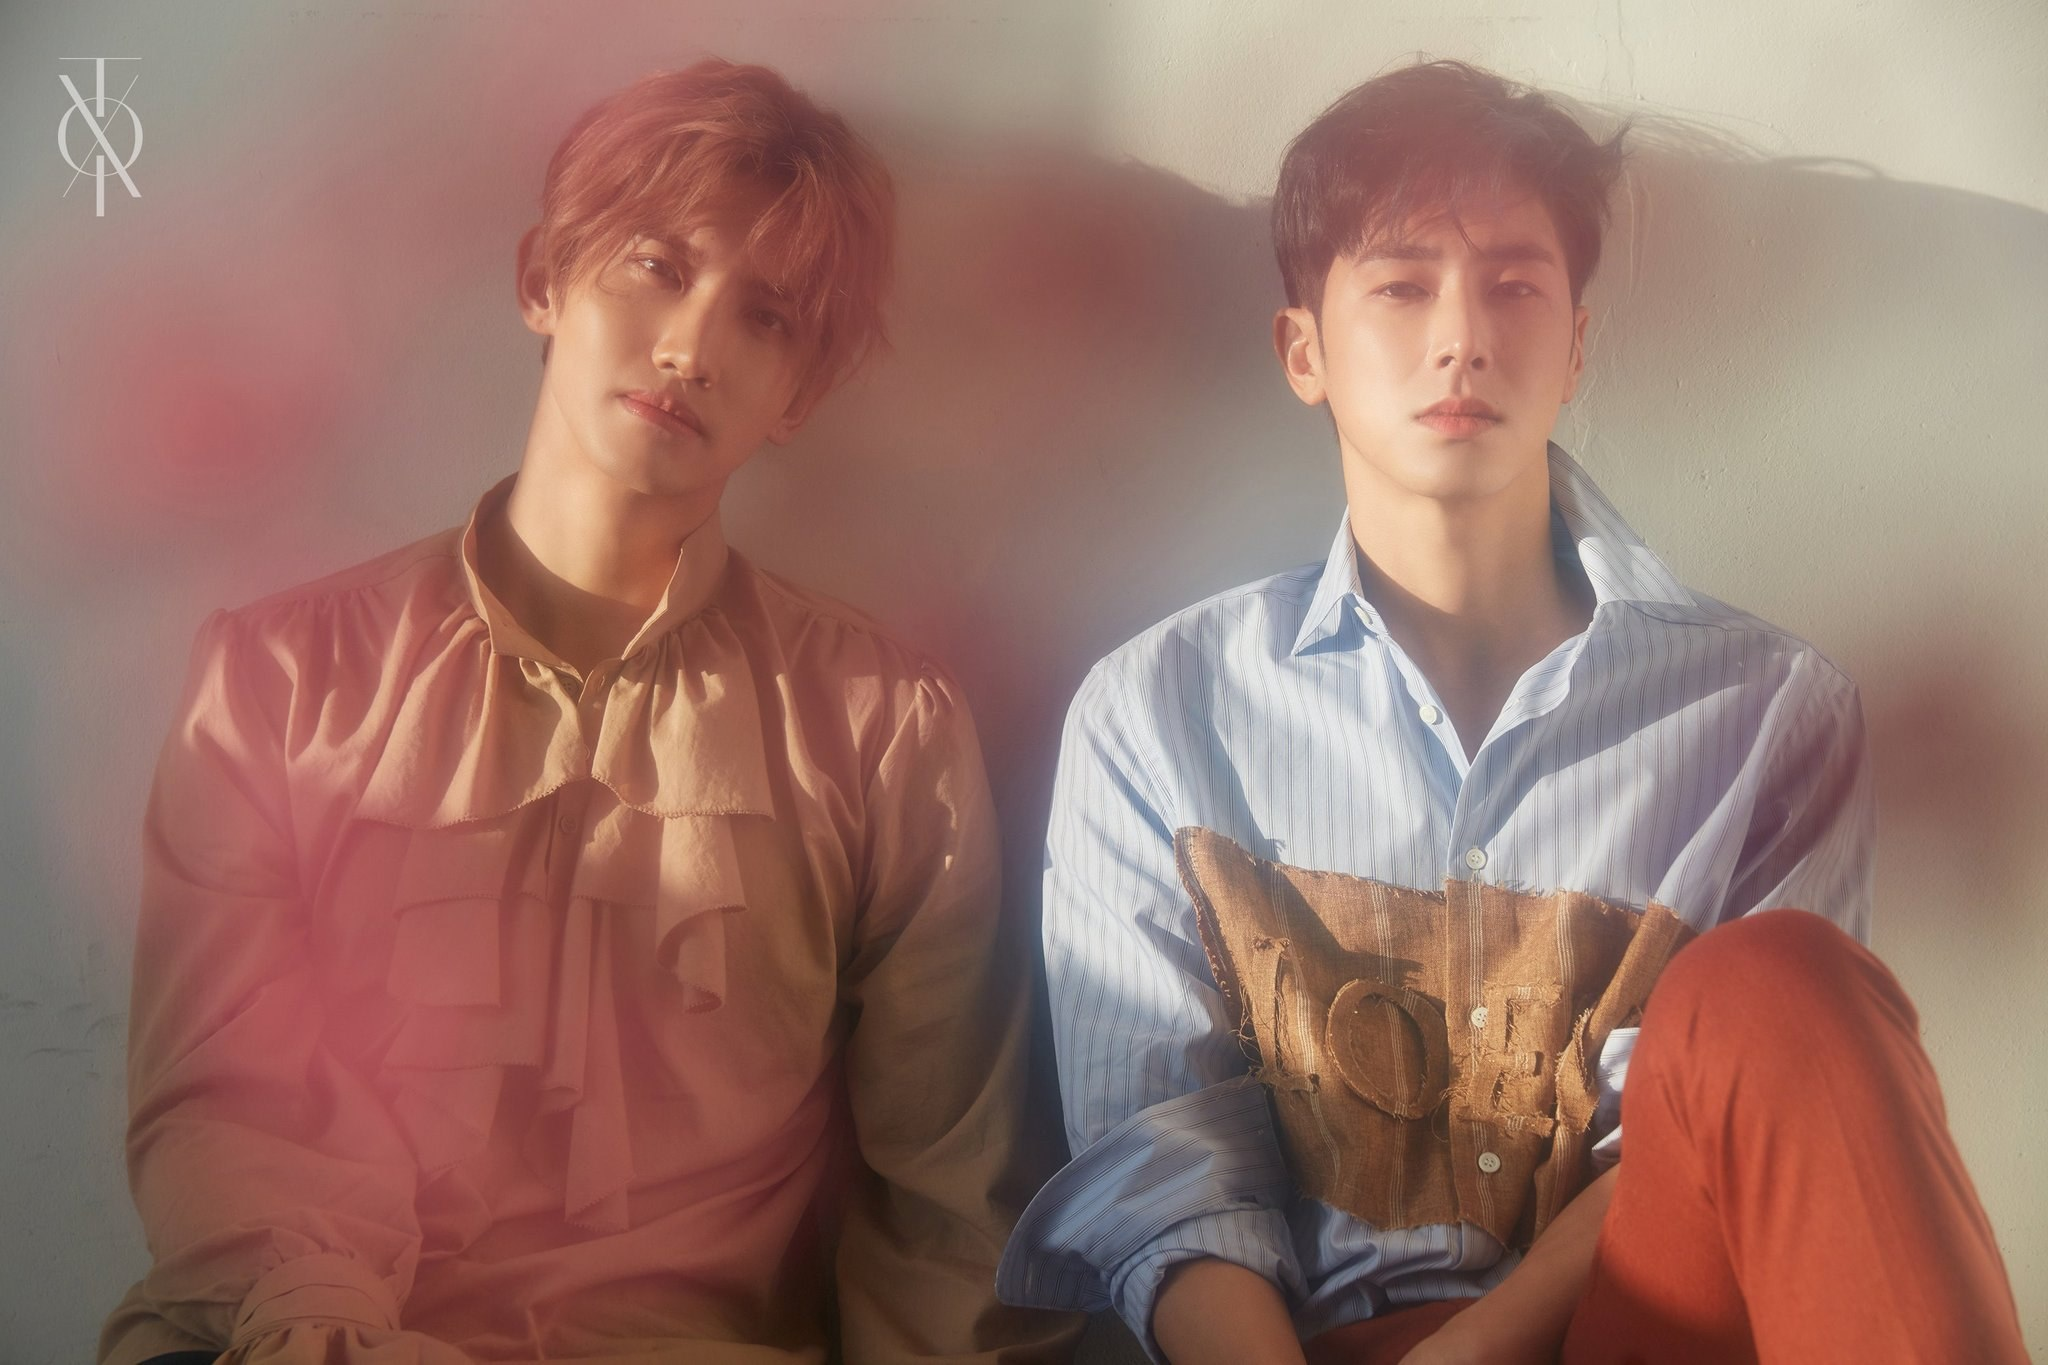 mnet-kingdom-confirms-tvxq-as-hosts-ikon-in-final-stage-of-discussions-to-appear